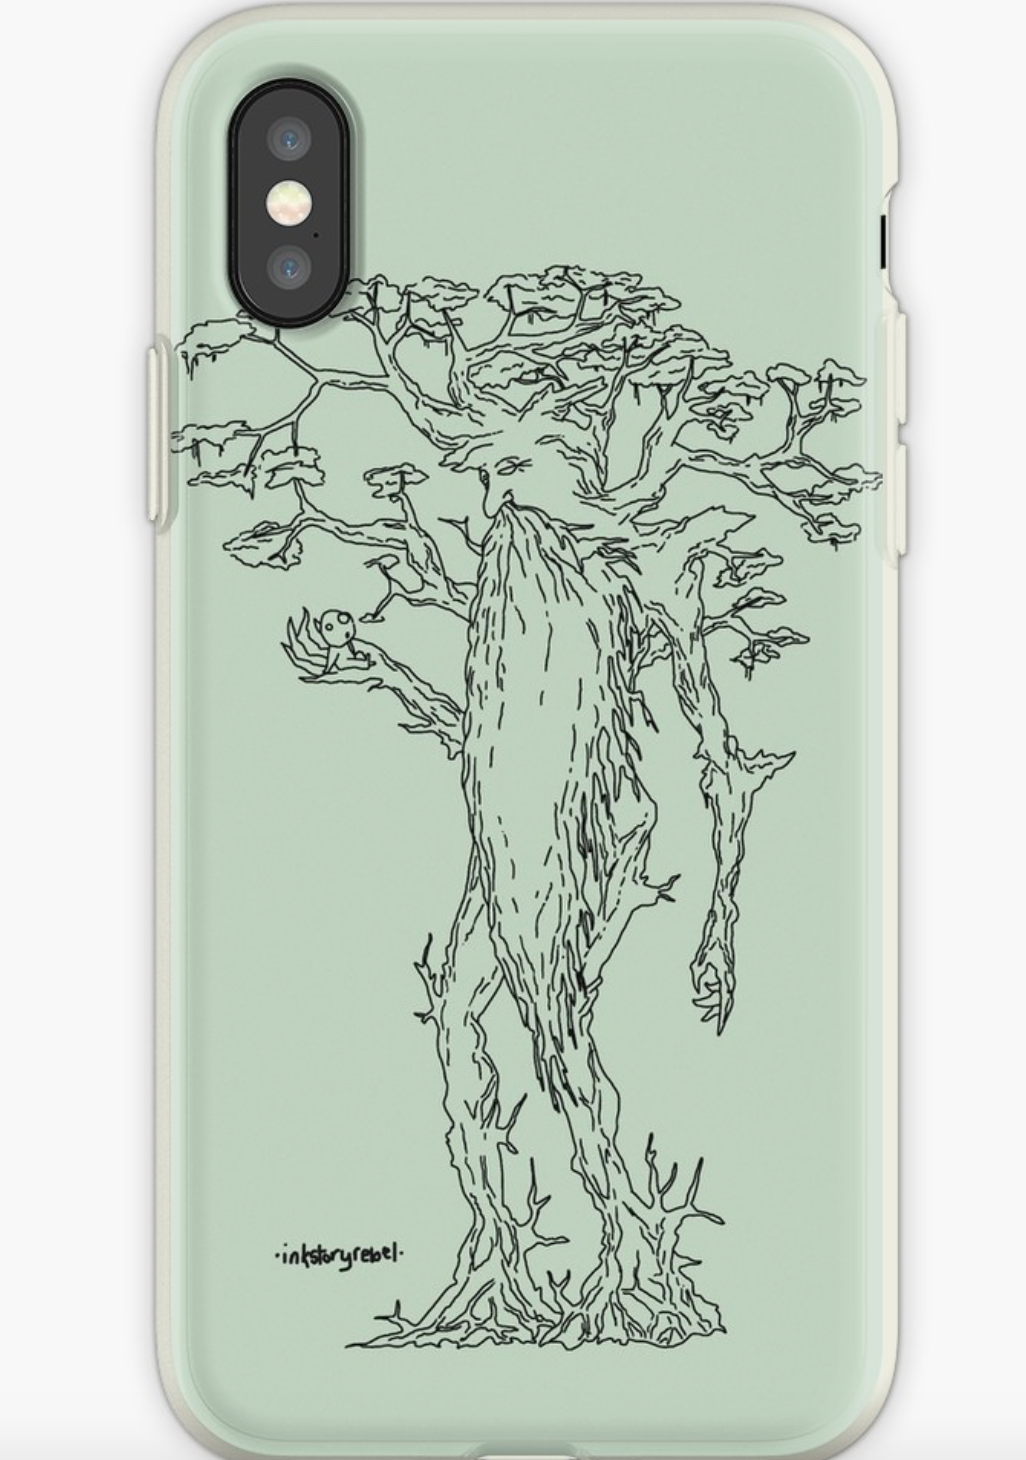 Lord of the Rings LoTR treebeard ent iPhone case